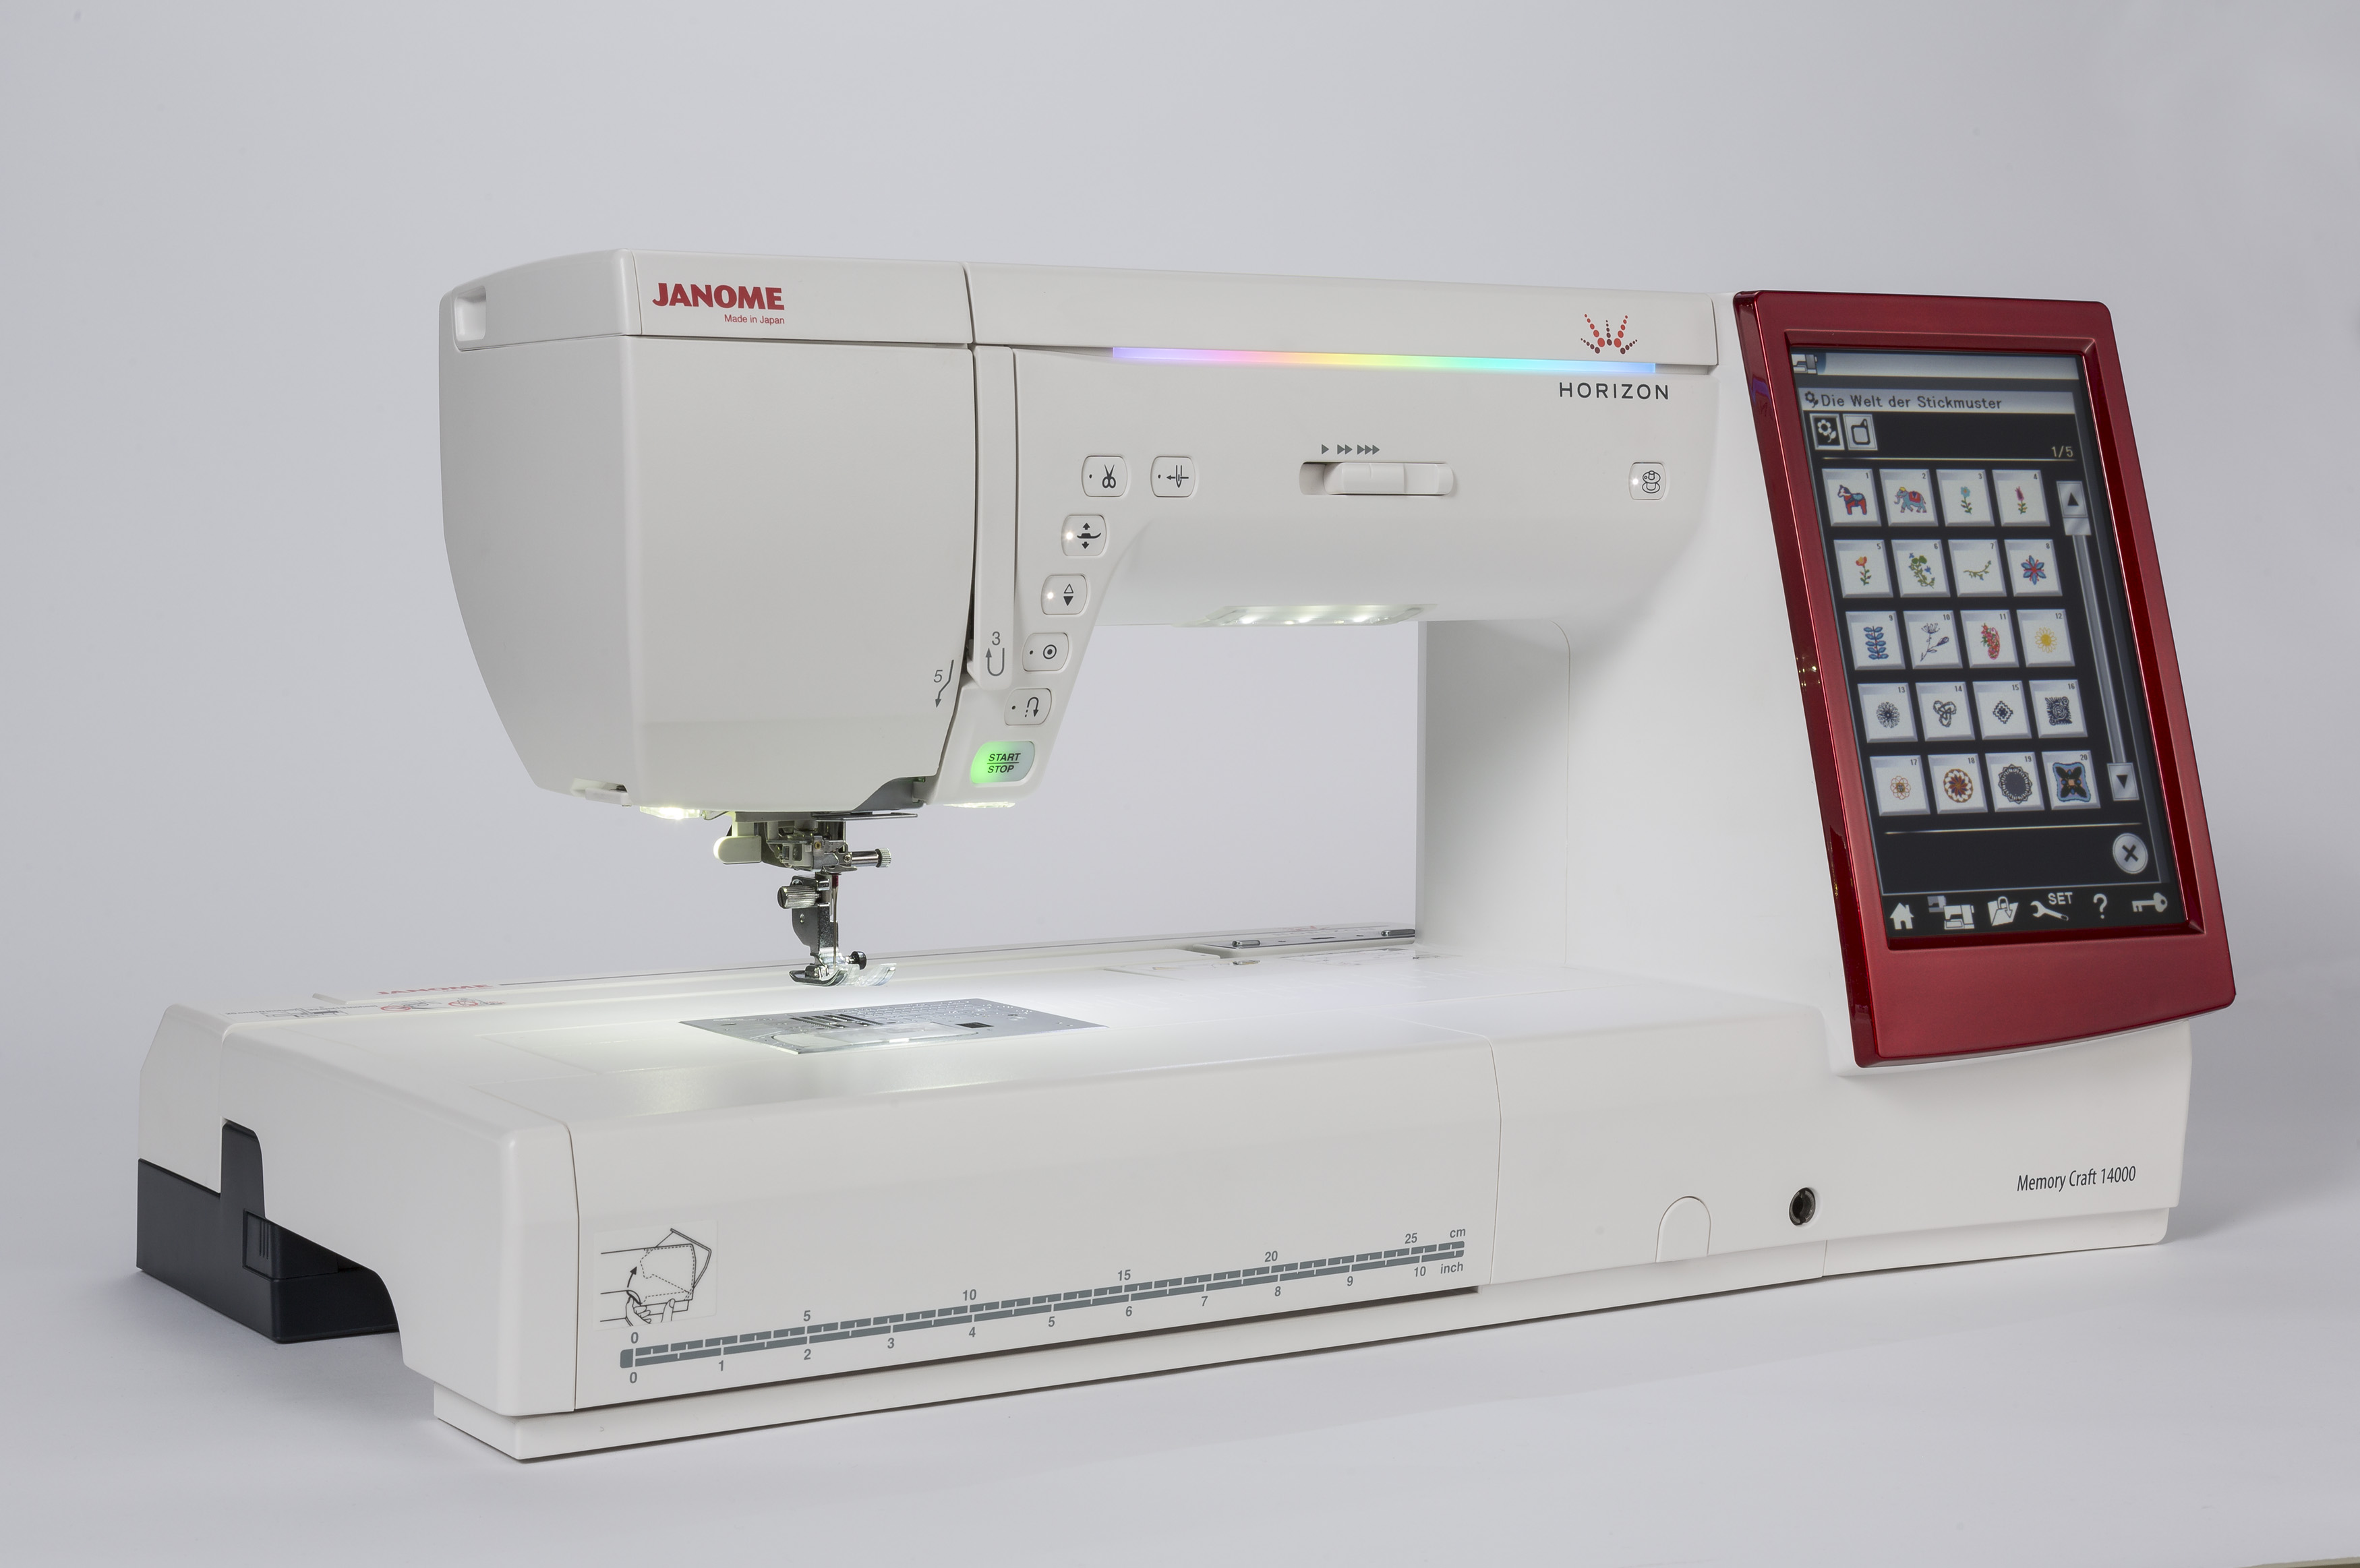 quilt quilting sewing machines machine embroidery se computerised janome